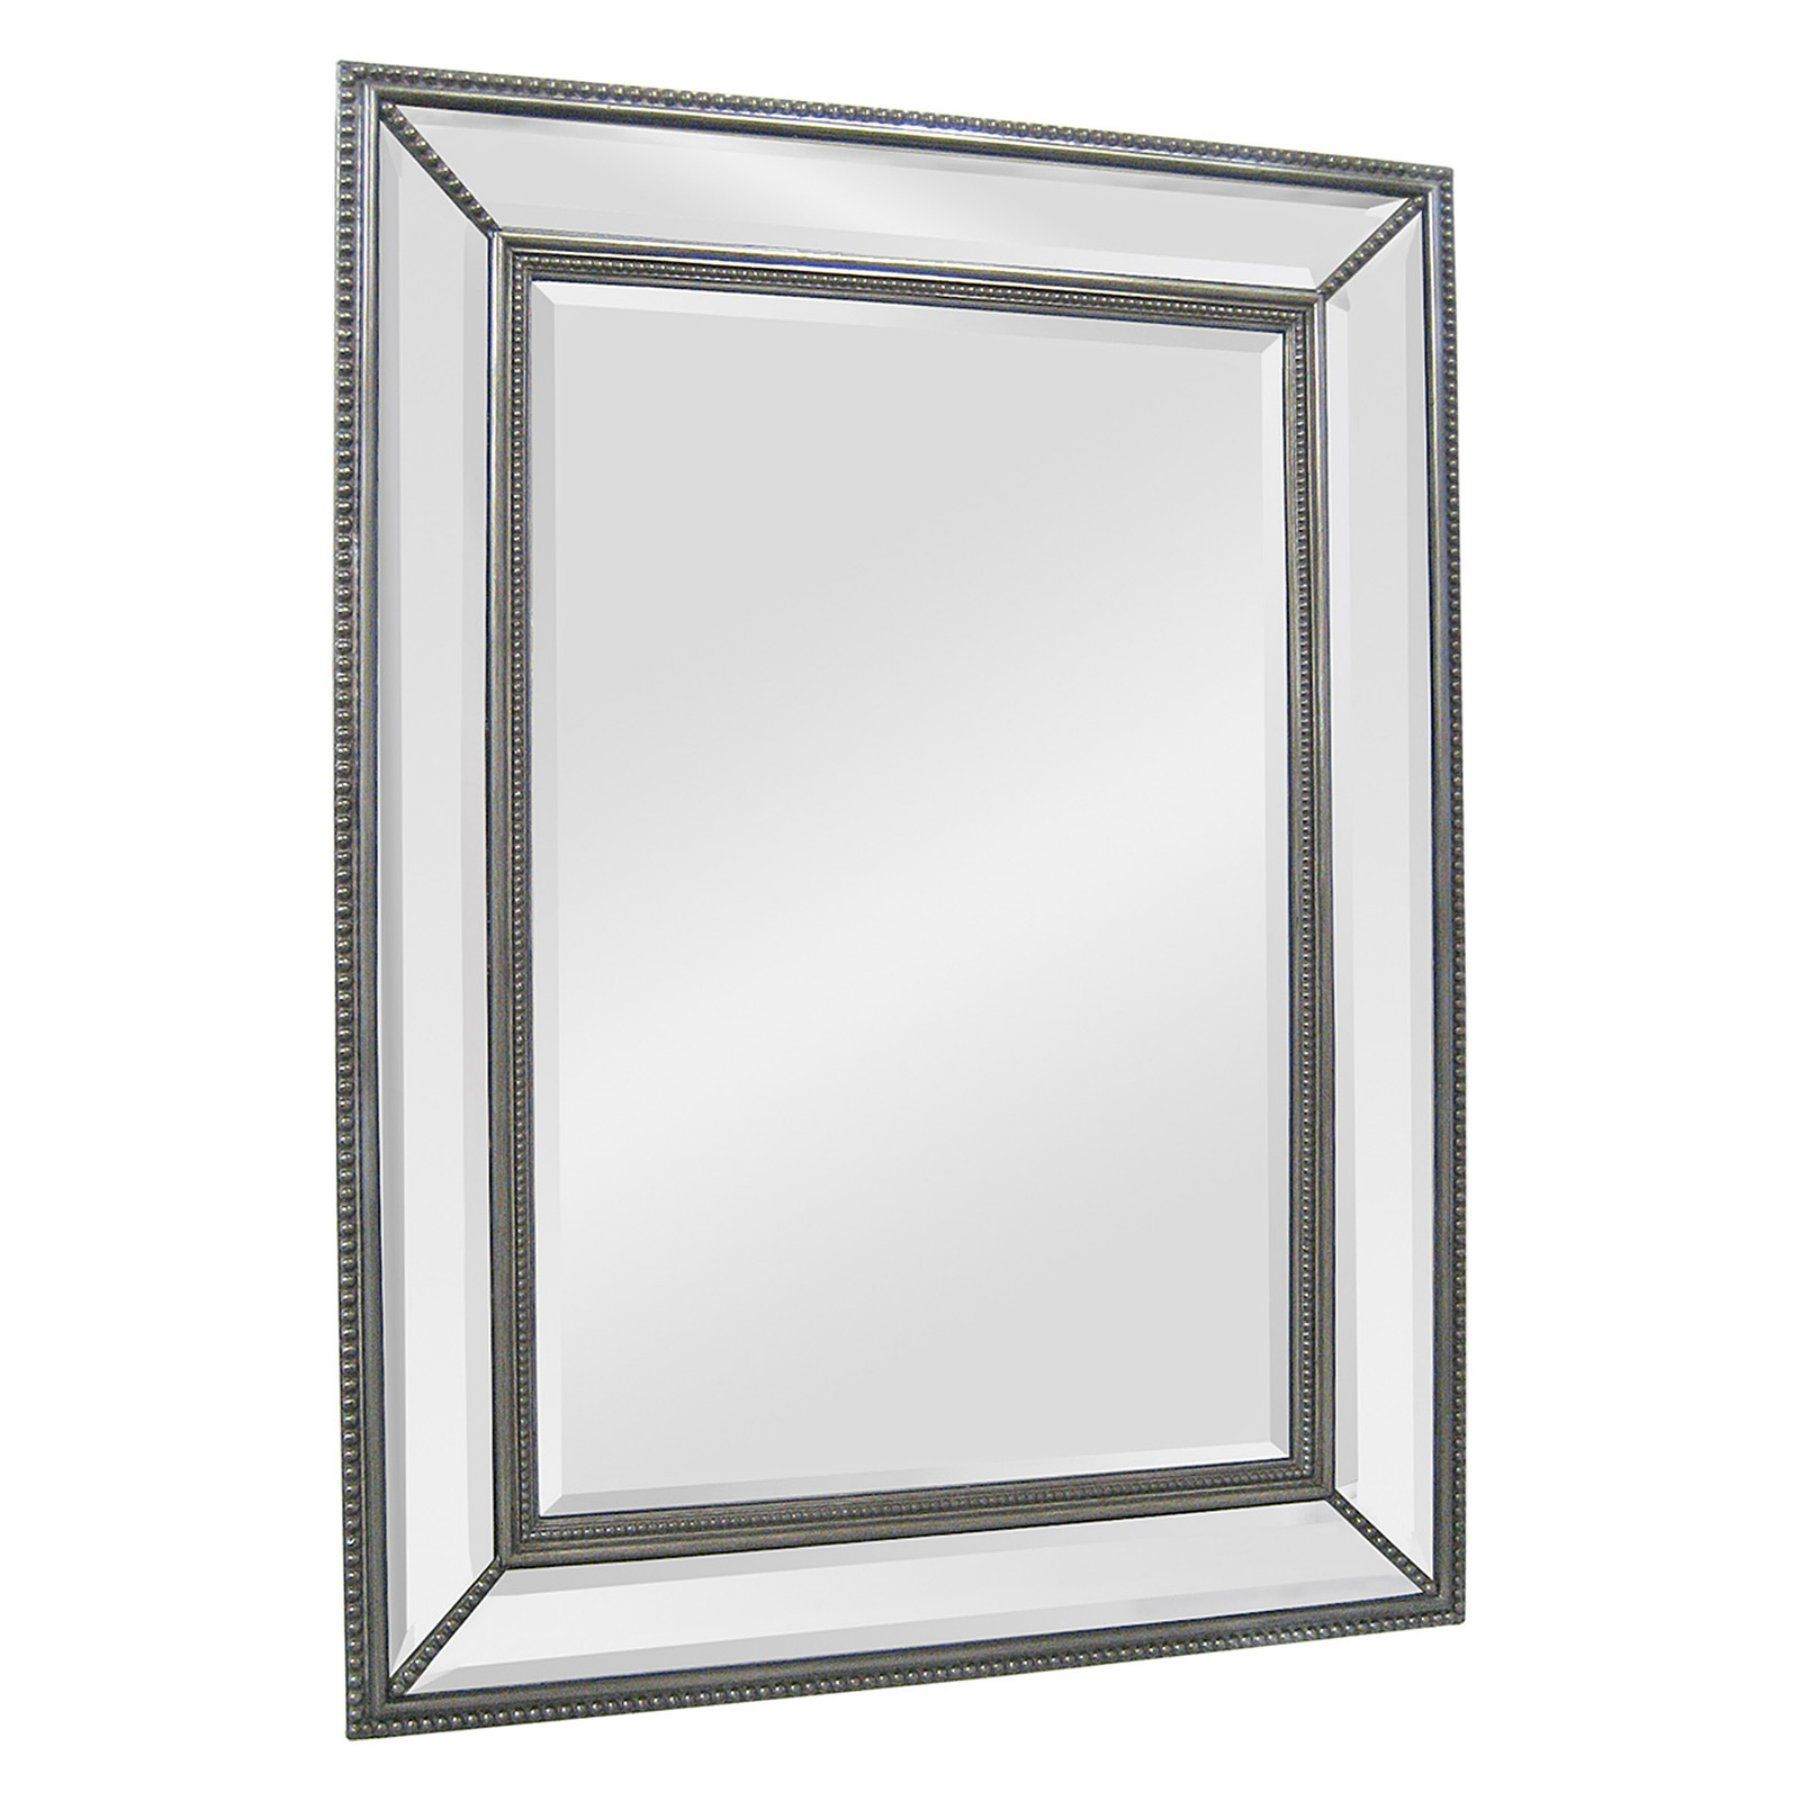 Ren-Wil Sophisticated Silver Wall Mirror - 40W x 51H in. - MT783